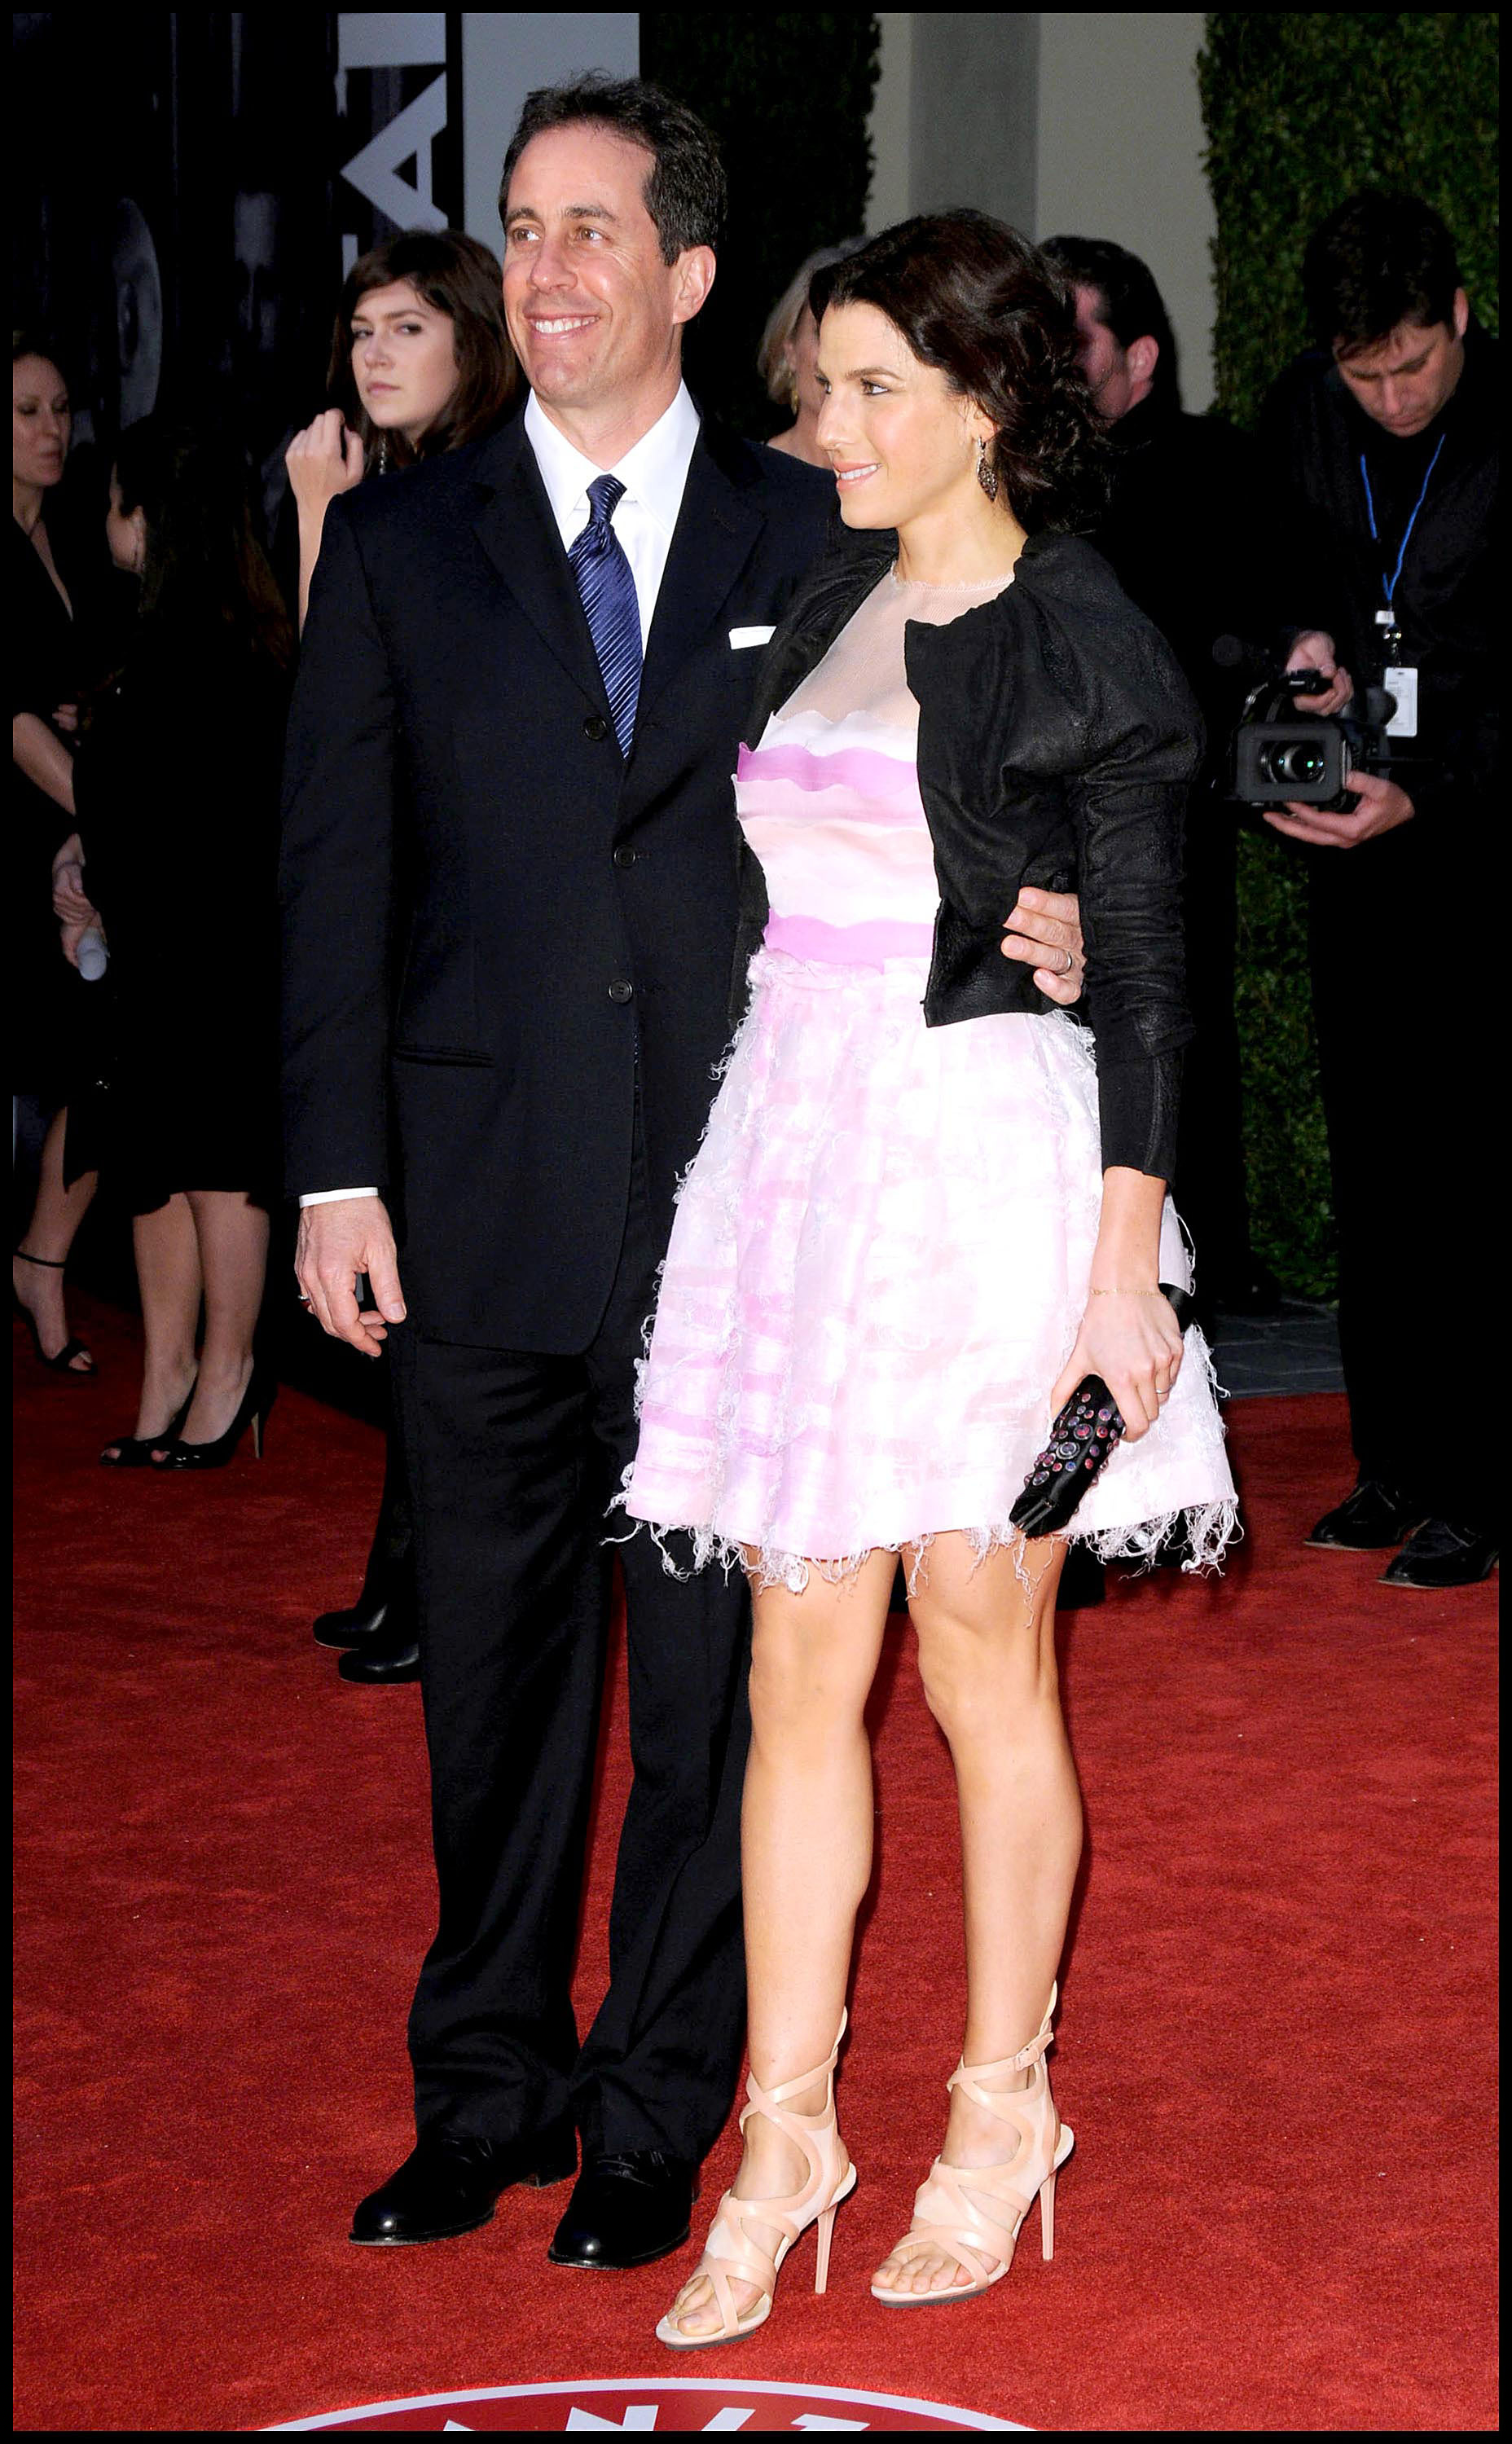 Top Jerry Seinfeld And Shoshanna Lonstein Images For Pinterest Tattoos